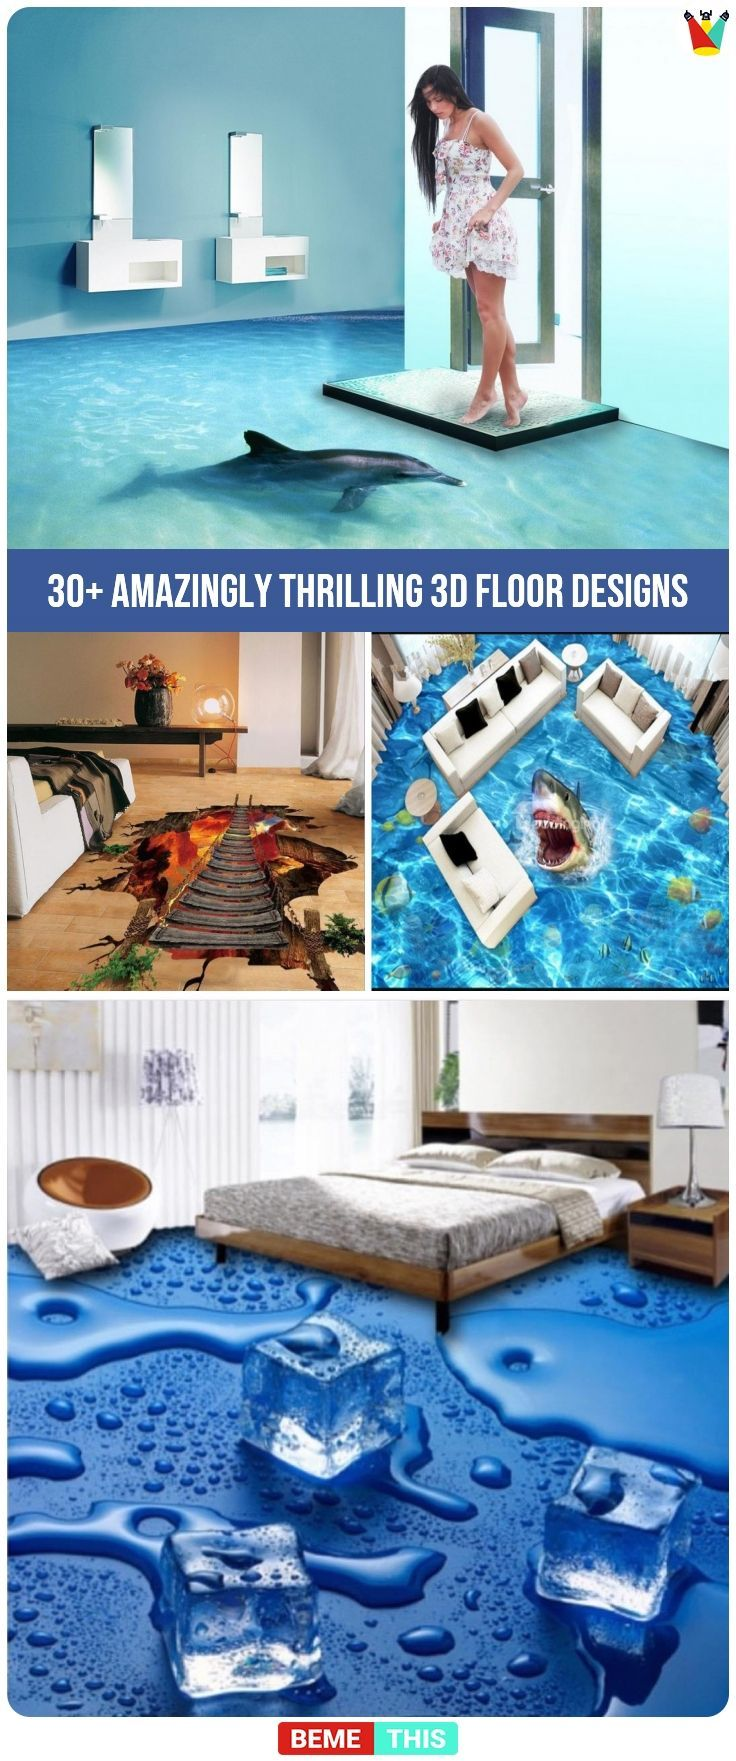 30 Amazing Floor Design Ideas For Homes Indoor Outdoor: 30+ Thrilling 3D Floors That Will Amaze You